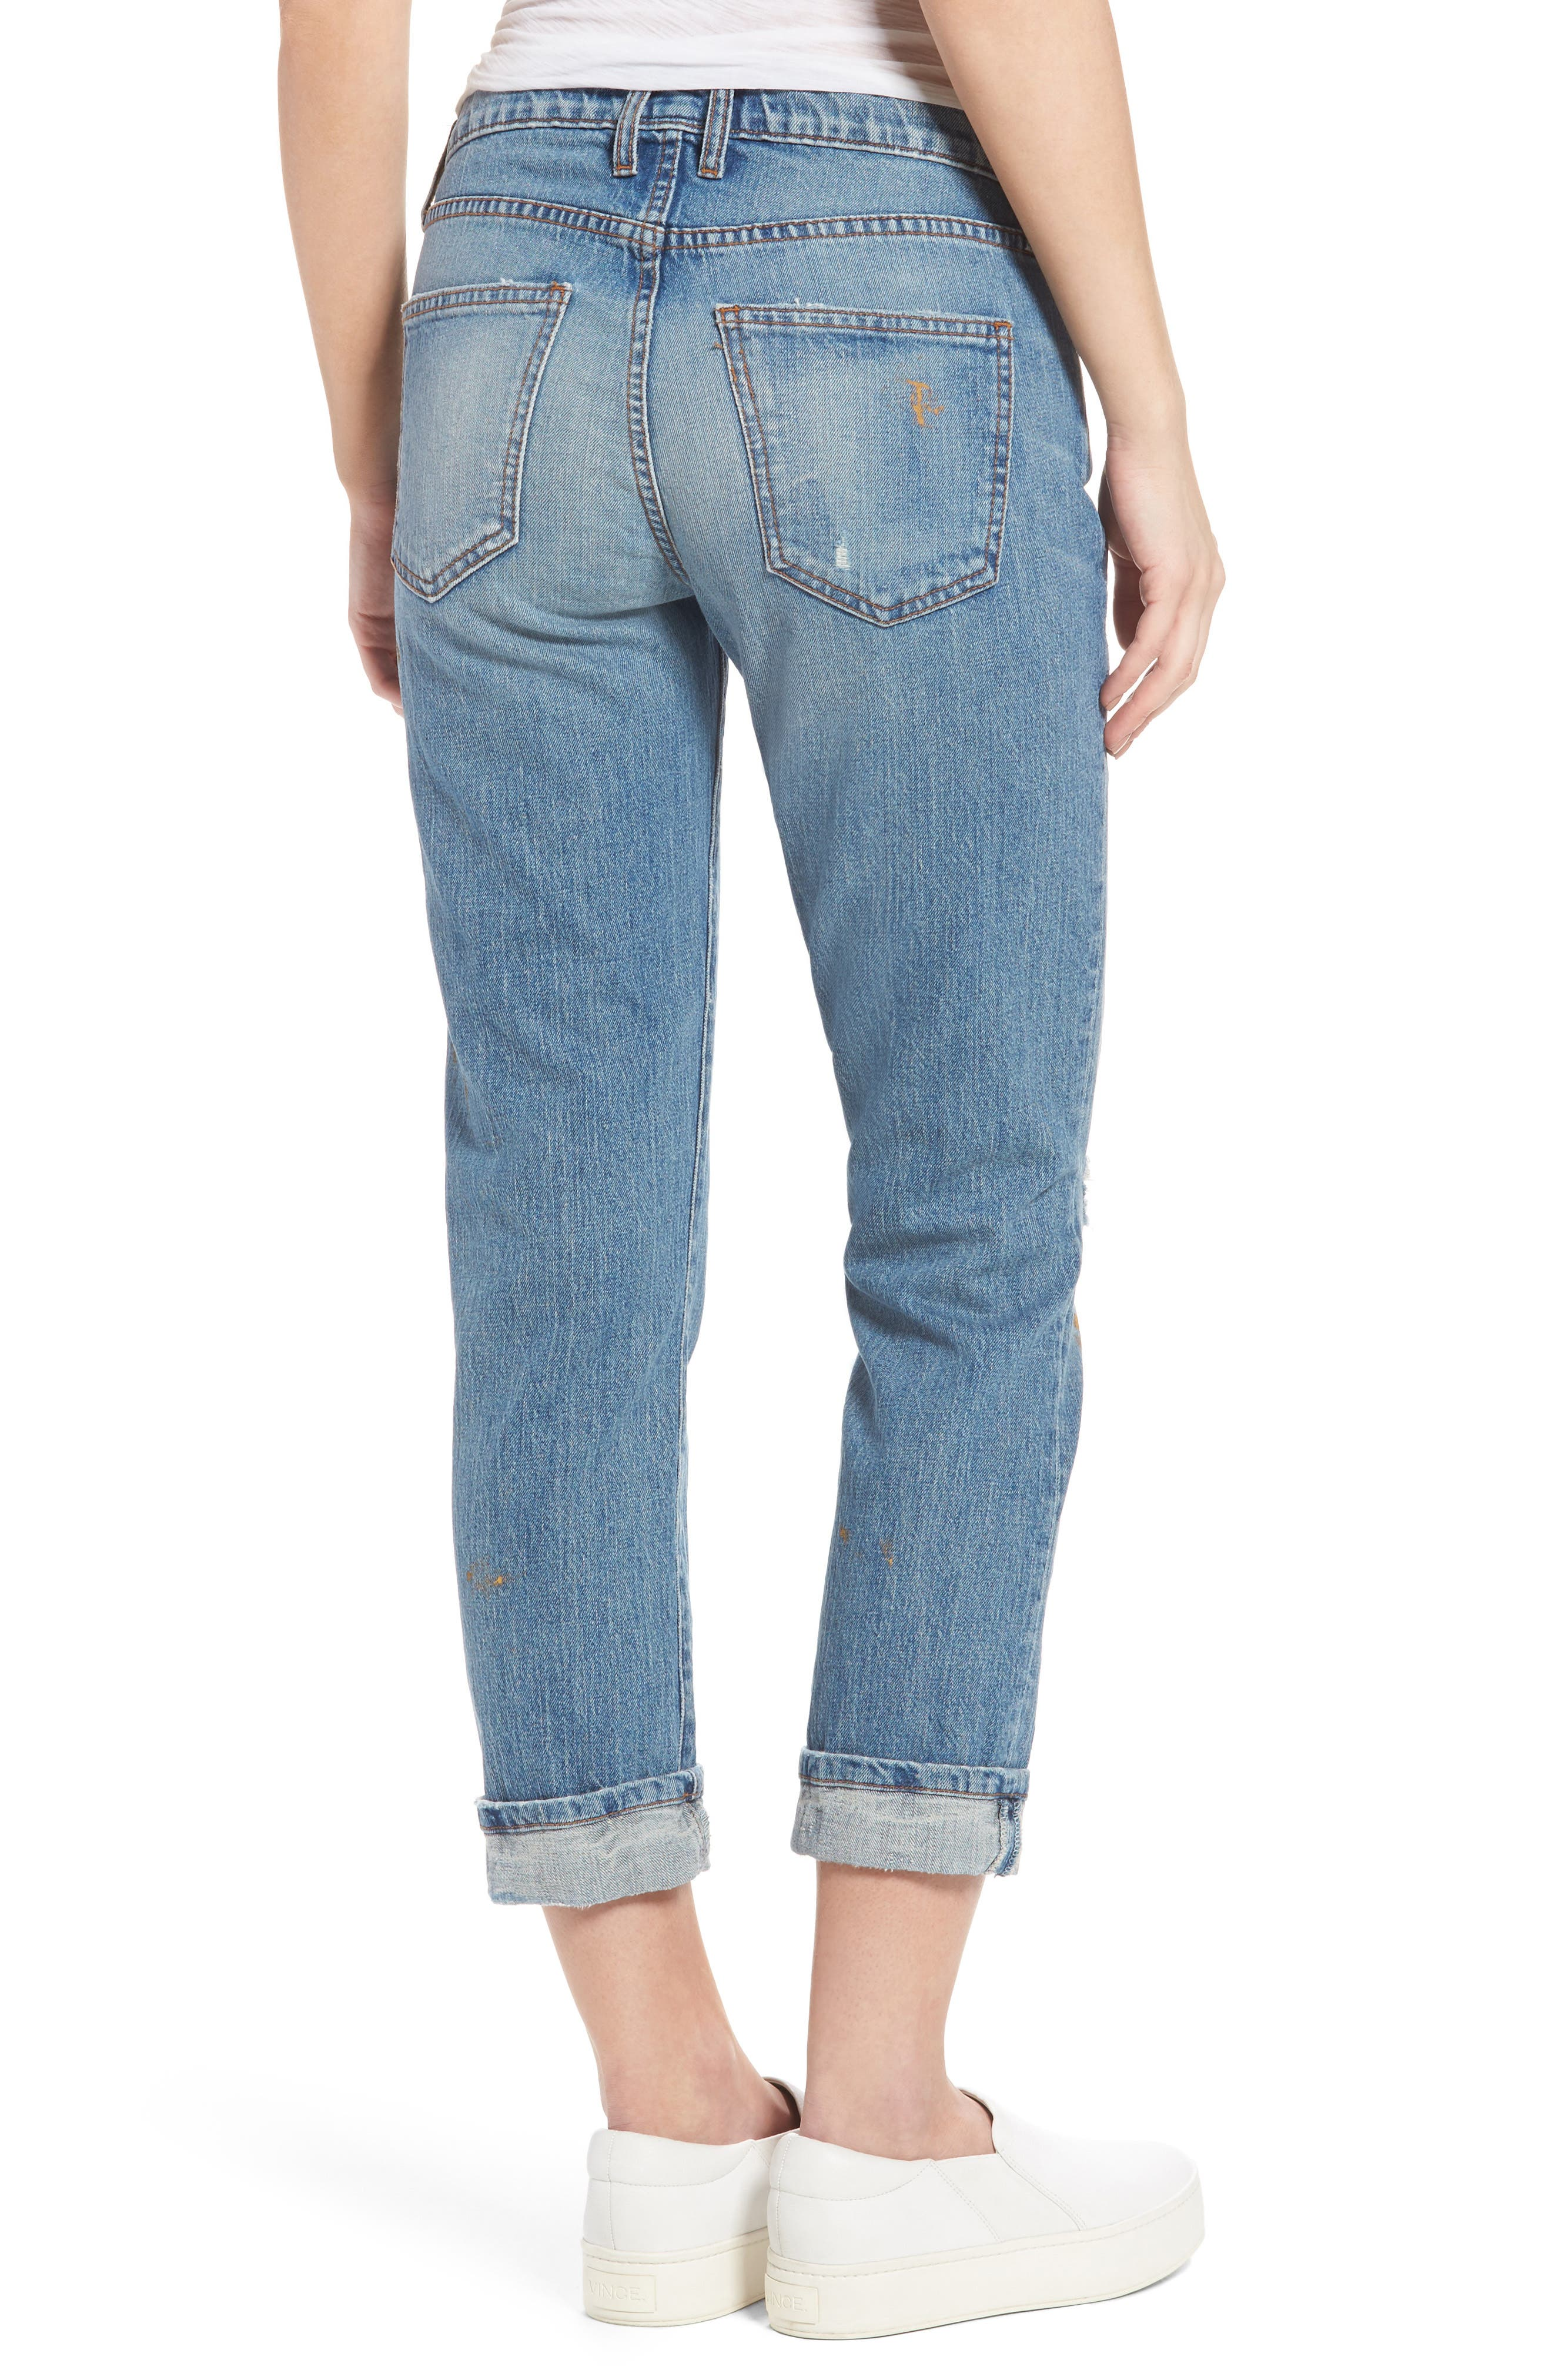 Fling Distressed Rolled Jeans,                             Alternate thumbnail 2, color,                             469